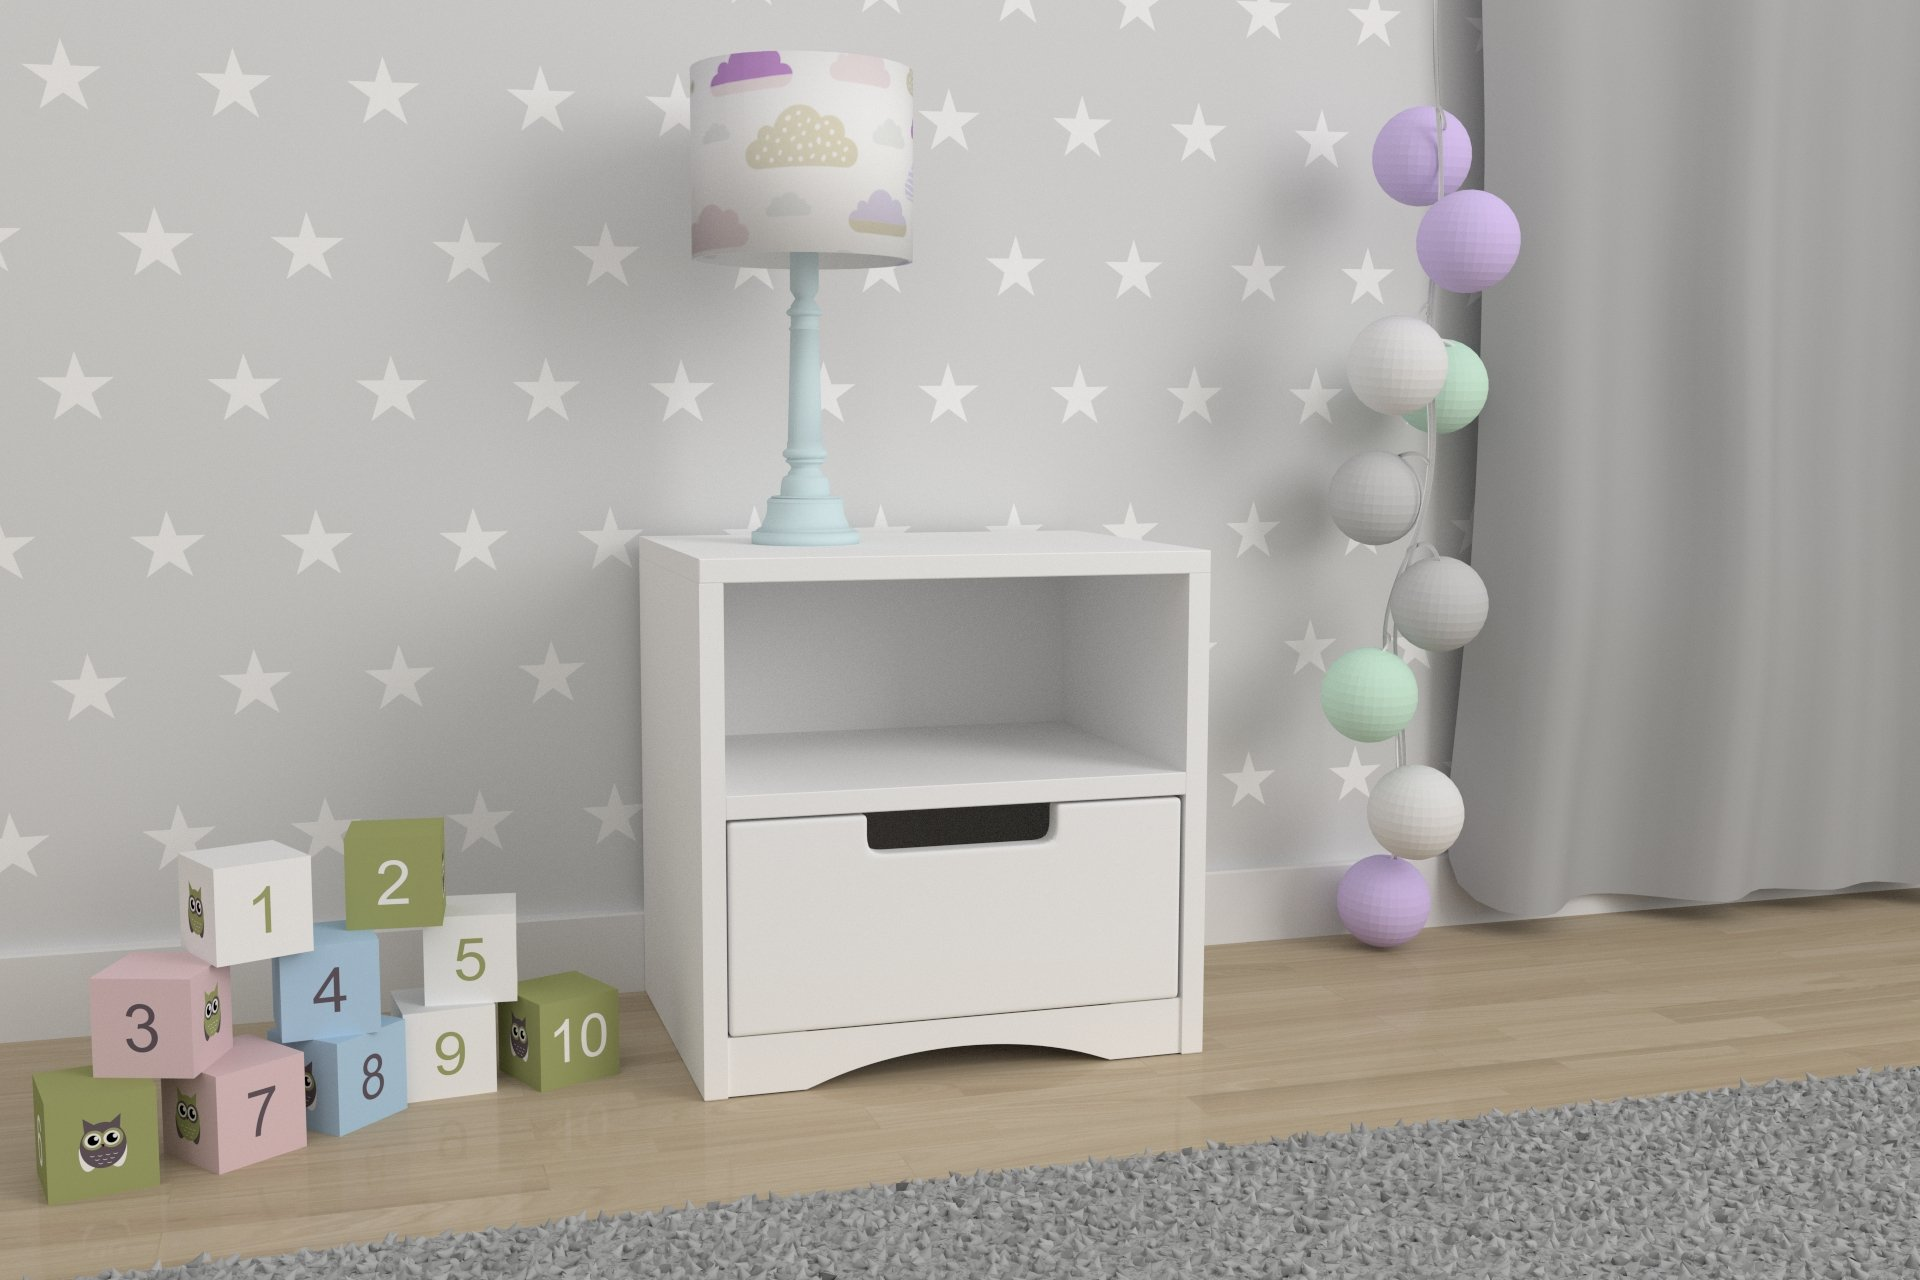 Children's Beds Home Kids Bedside Table Classic_1 For Kids, Children, Junior (White, 40x40x30) Children's Beds Home Table dimensions 40x40x30 Drawer mounted on runners Additional shelf above drawers 1